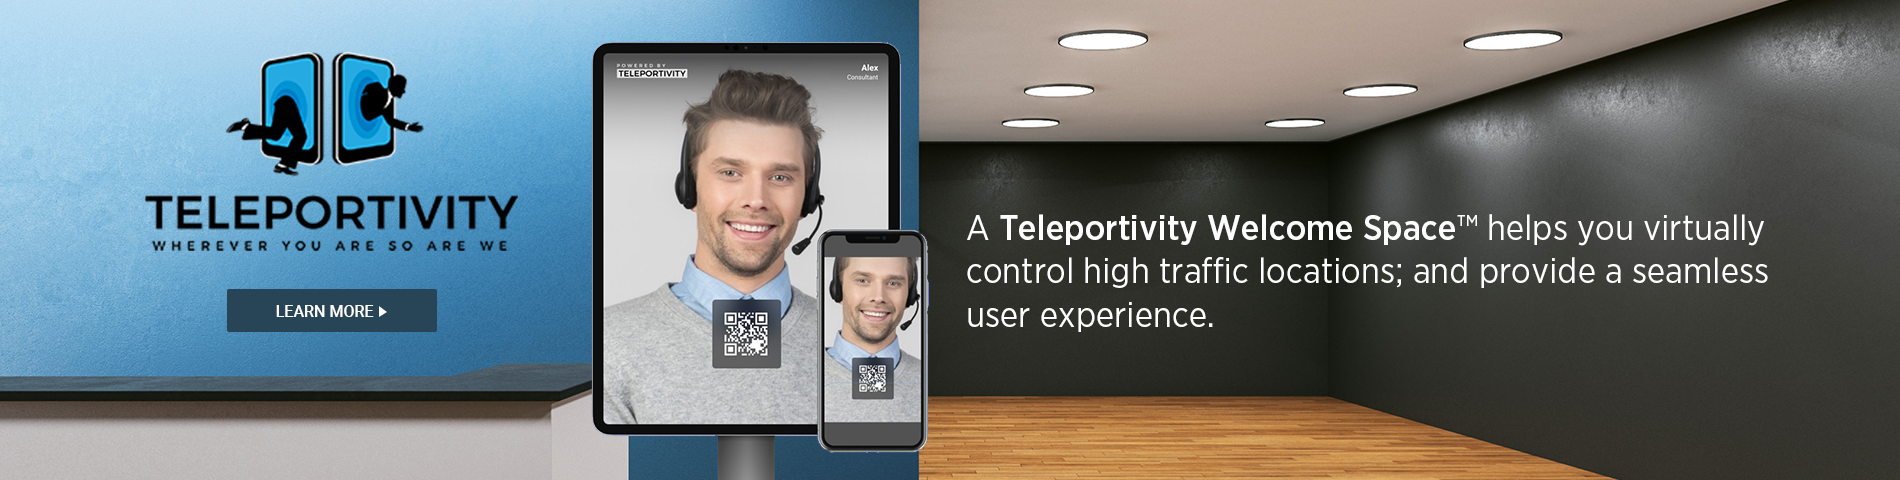 Teleportivity Welcome Space™